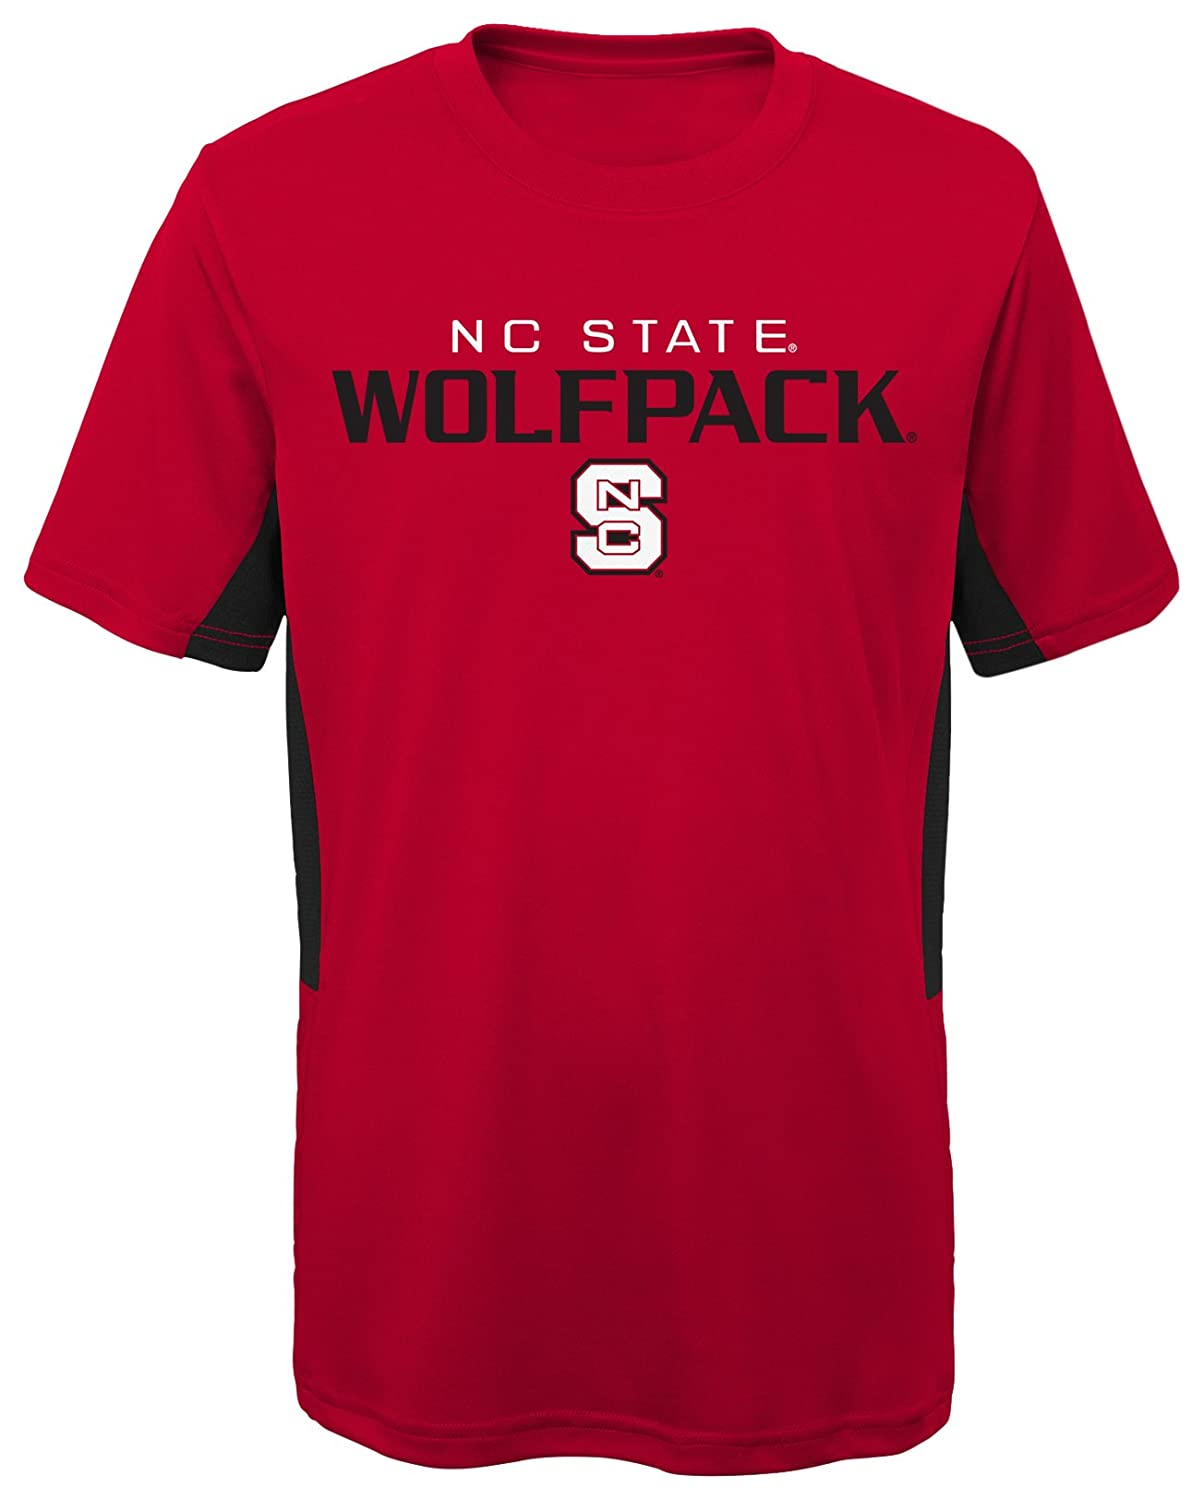 Youth Large NCAA by Outerstuff NCAA North Carolina State Wolfpack Youth Boys Mainframe: Short Sleeve Performance Top Dark Red 14-16